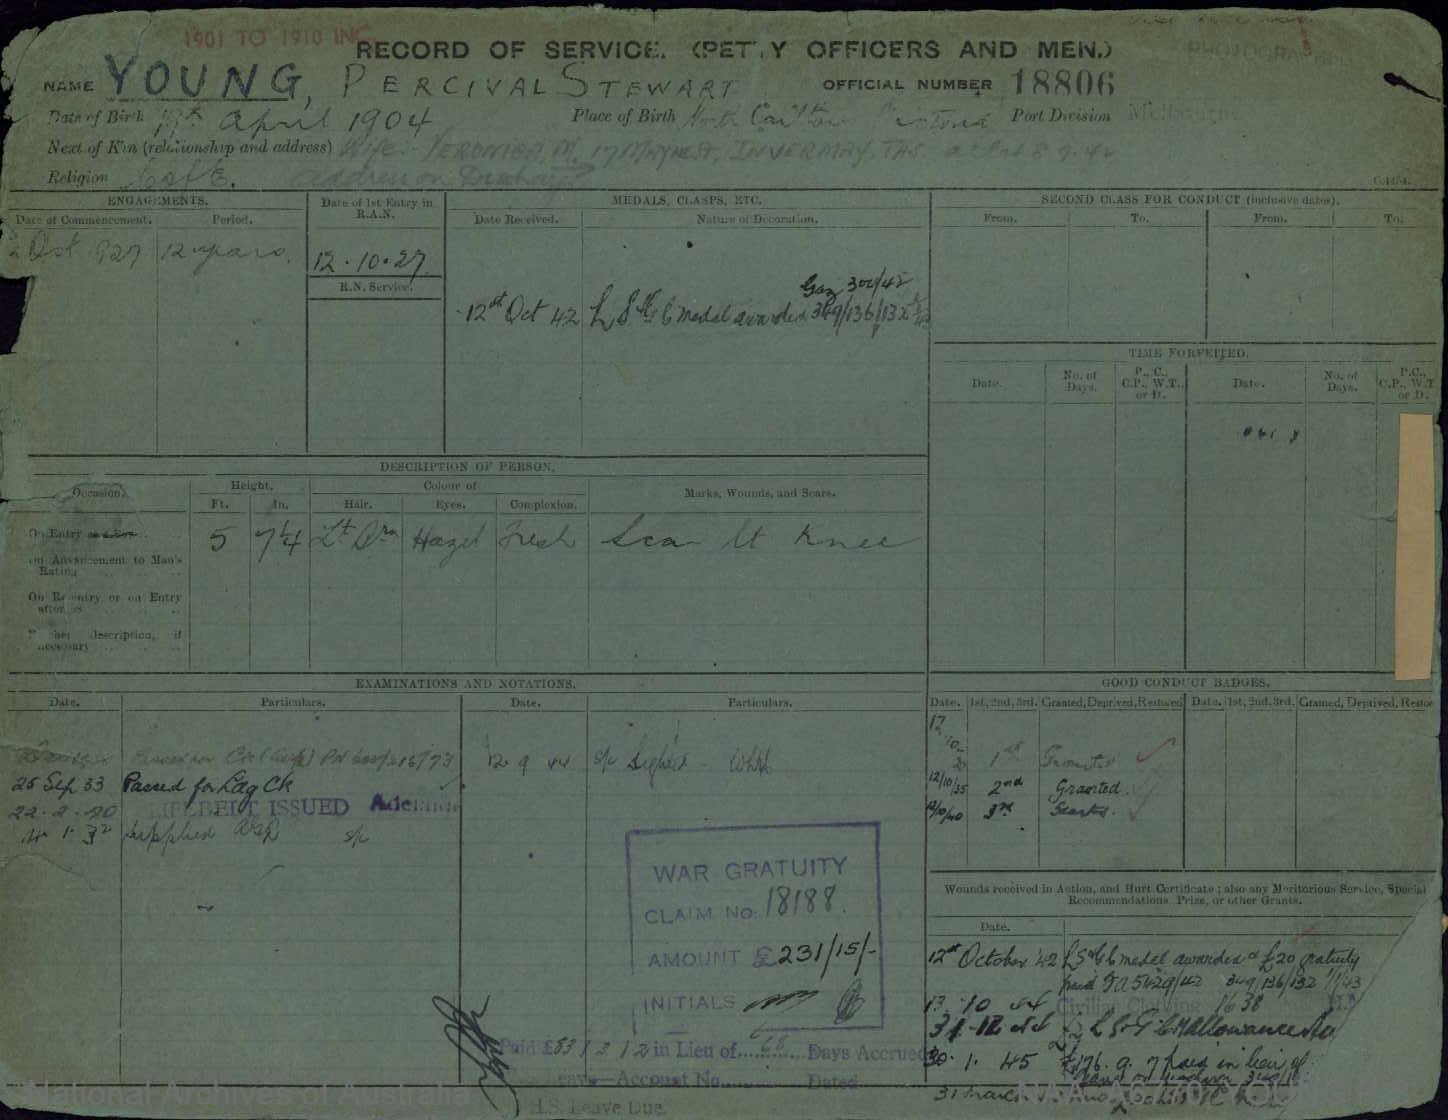 YOUNG PERCIVAL STEWART : Service Number - 18806 : Date of birth - 19 Apr 1904 : Place of birth - NORTH CARLTON VIC : Place of enlistment - MELBOURNE : Next of Kin - VERONICA